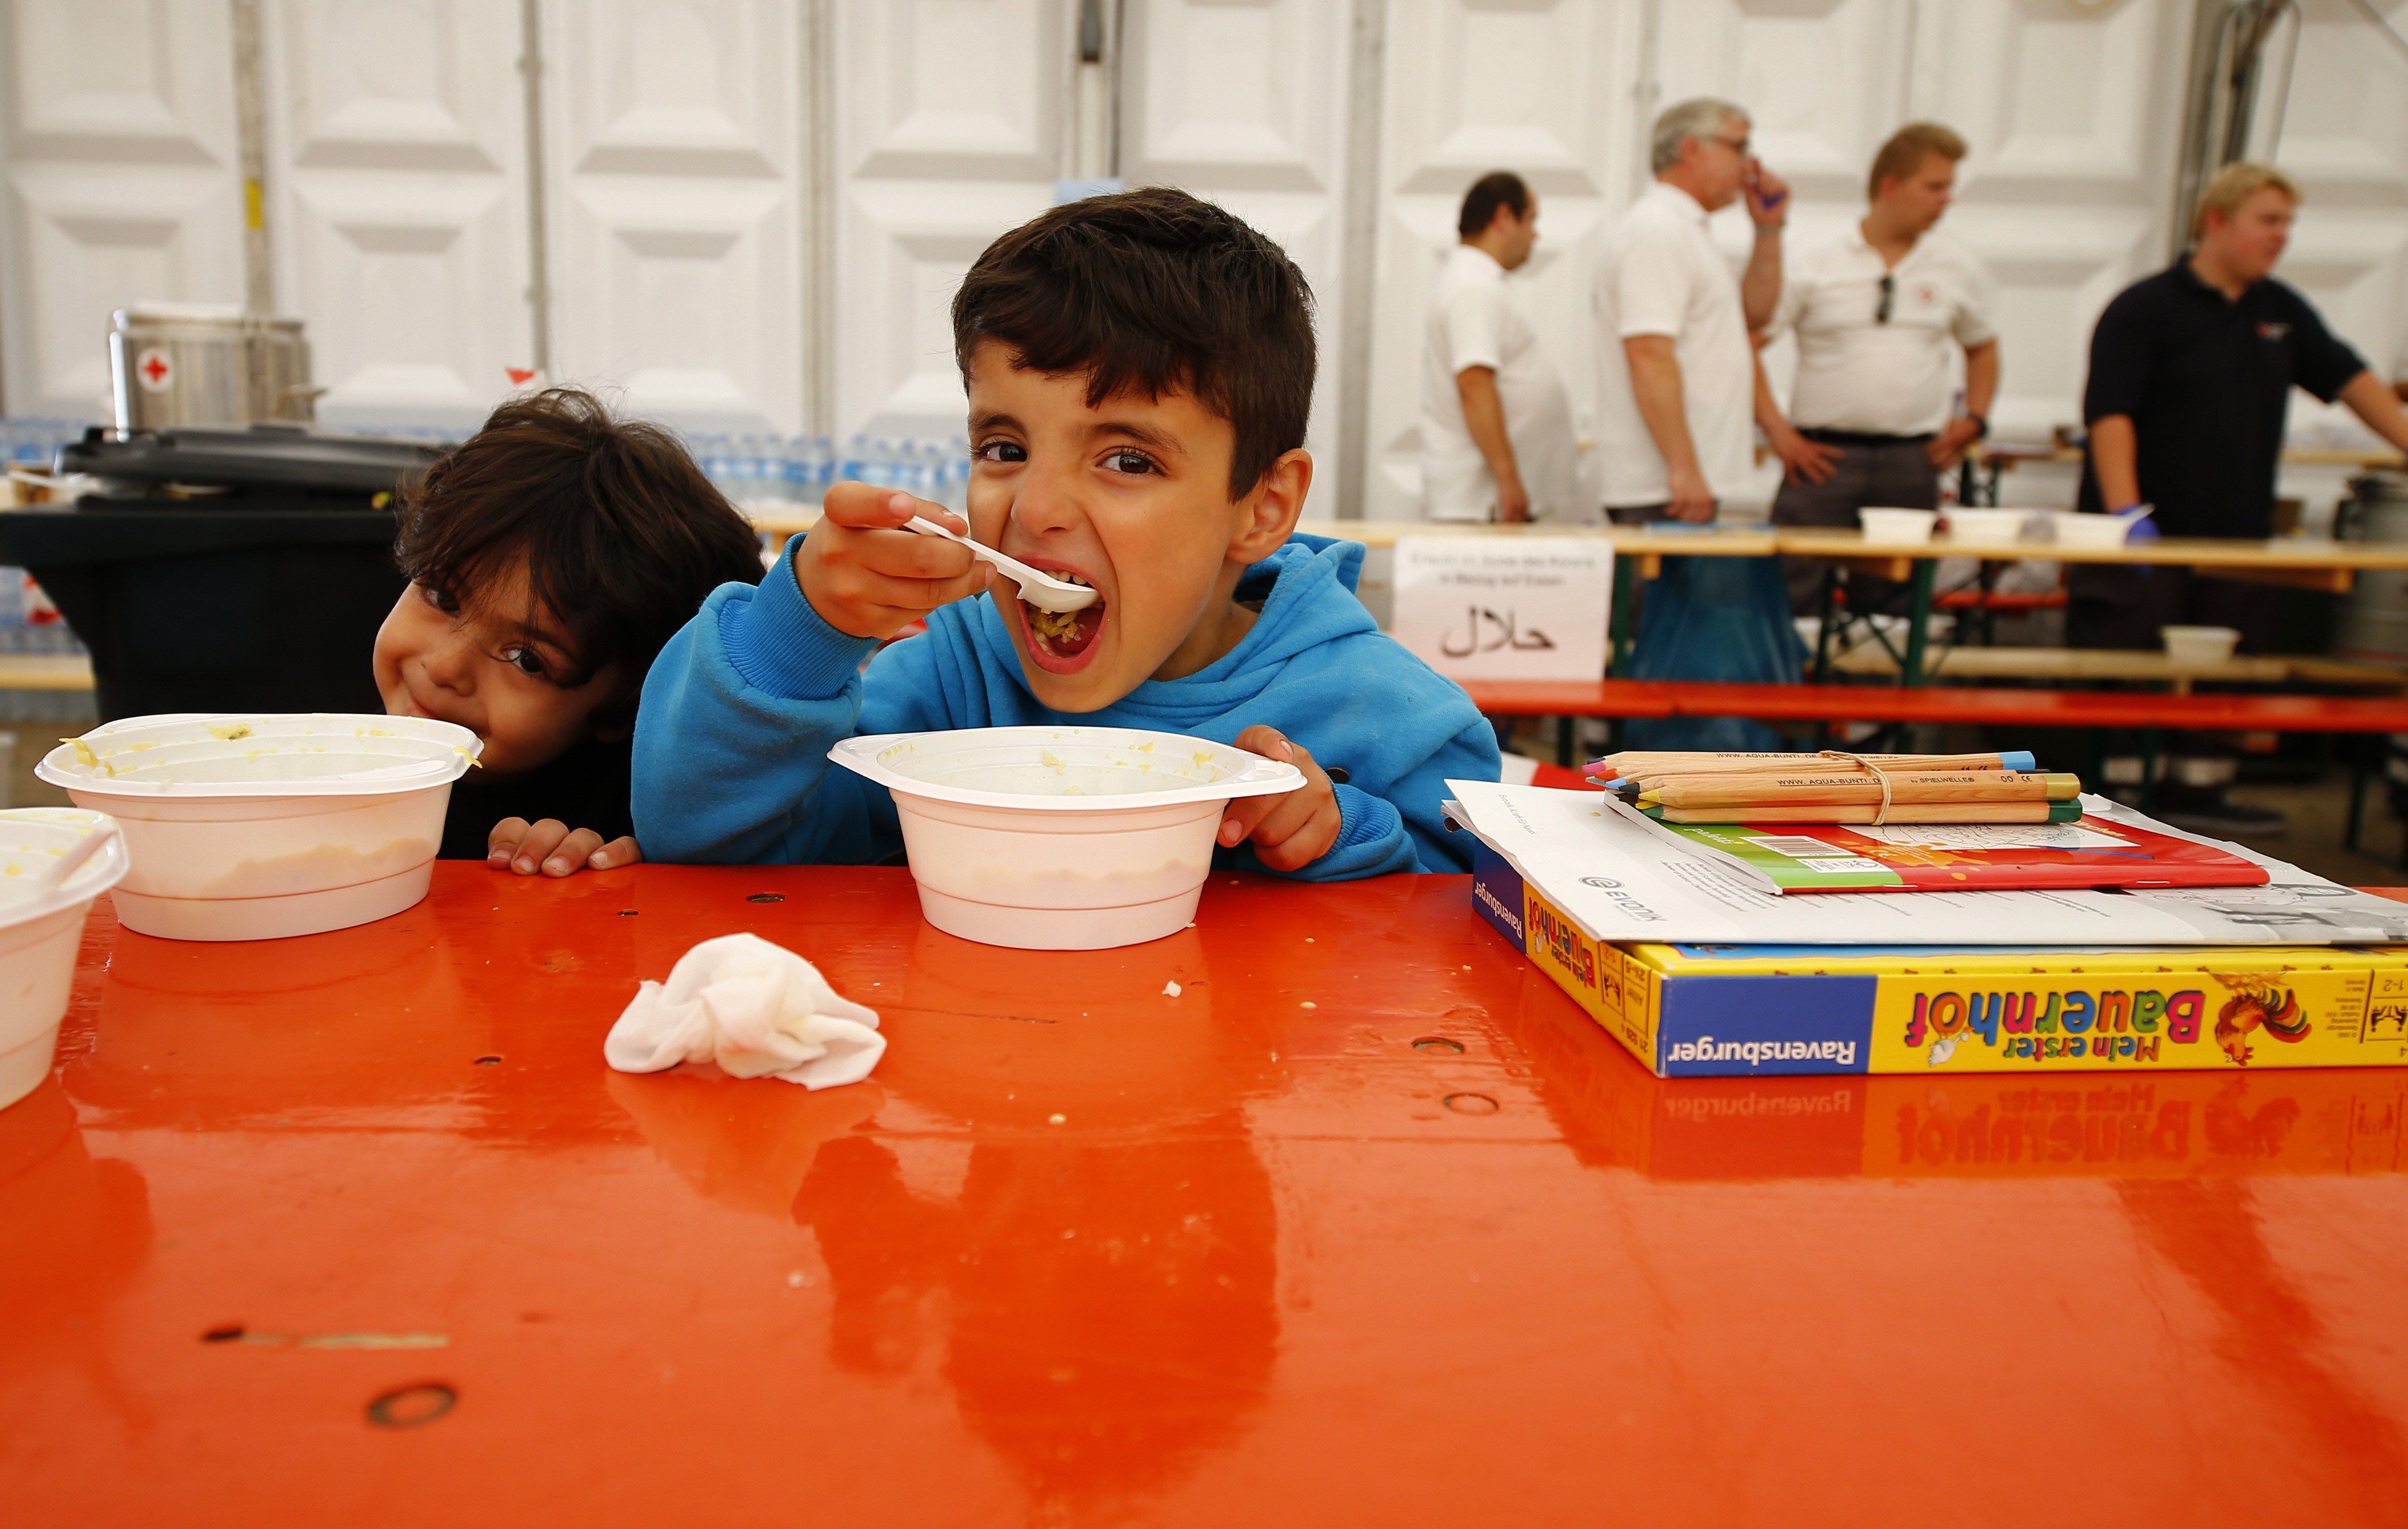 A child eats at a temporary shelter in a sports hall in Hanau, Germany, on Sept. 18, 2015. Photo by Kai Pfaffenbach/Reuters